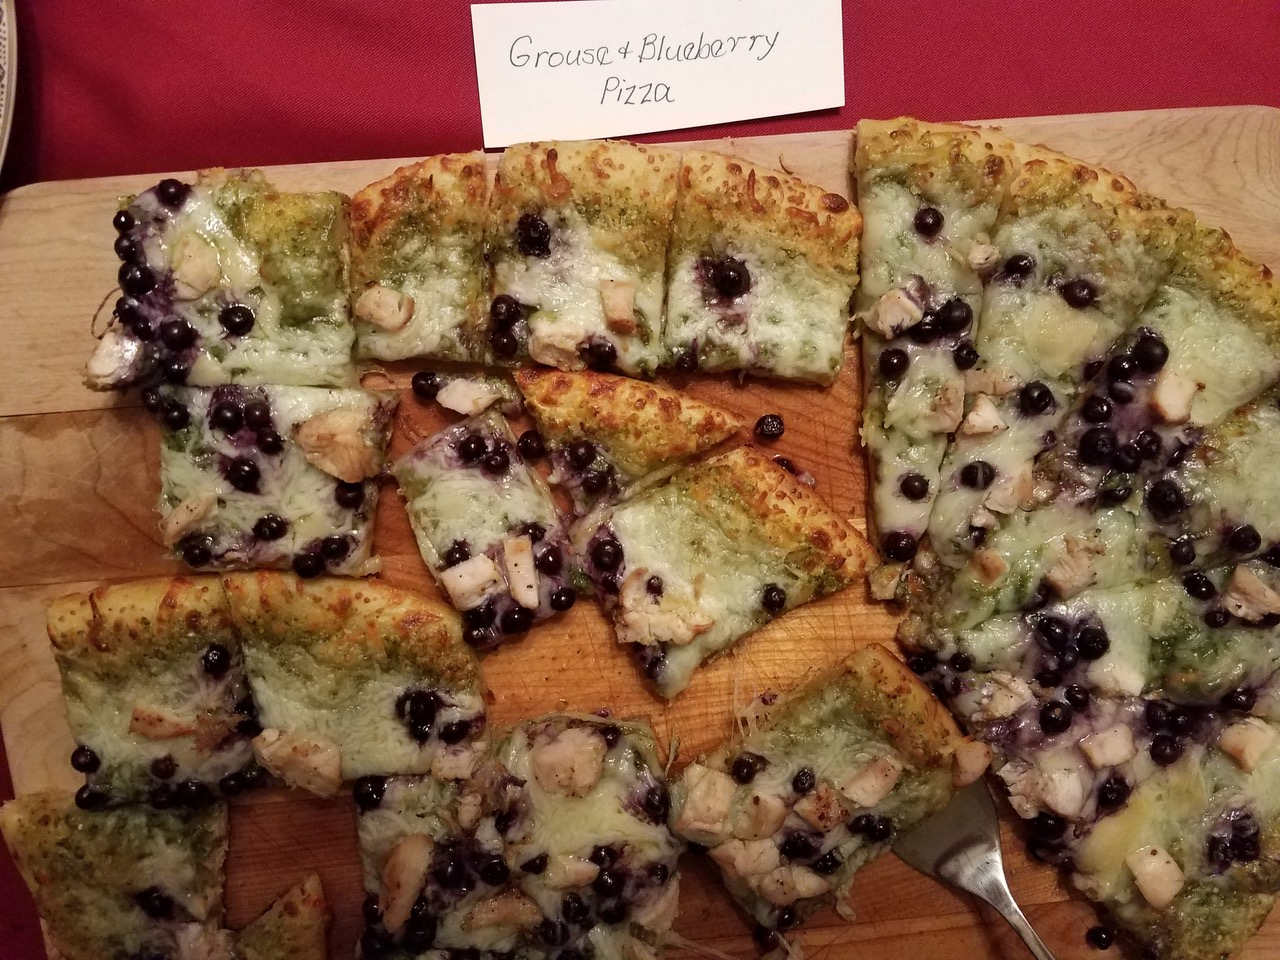 Pierre A Pizza Blueberry Grouse Pesto Pizza Outdoornews